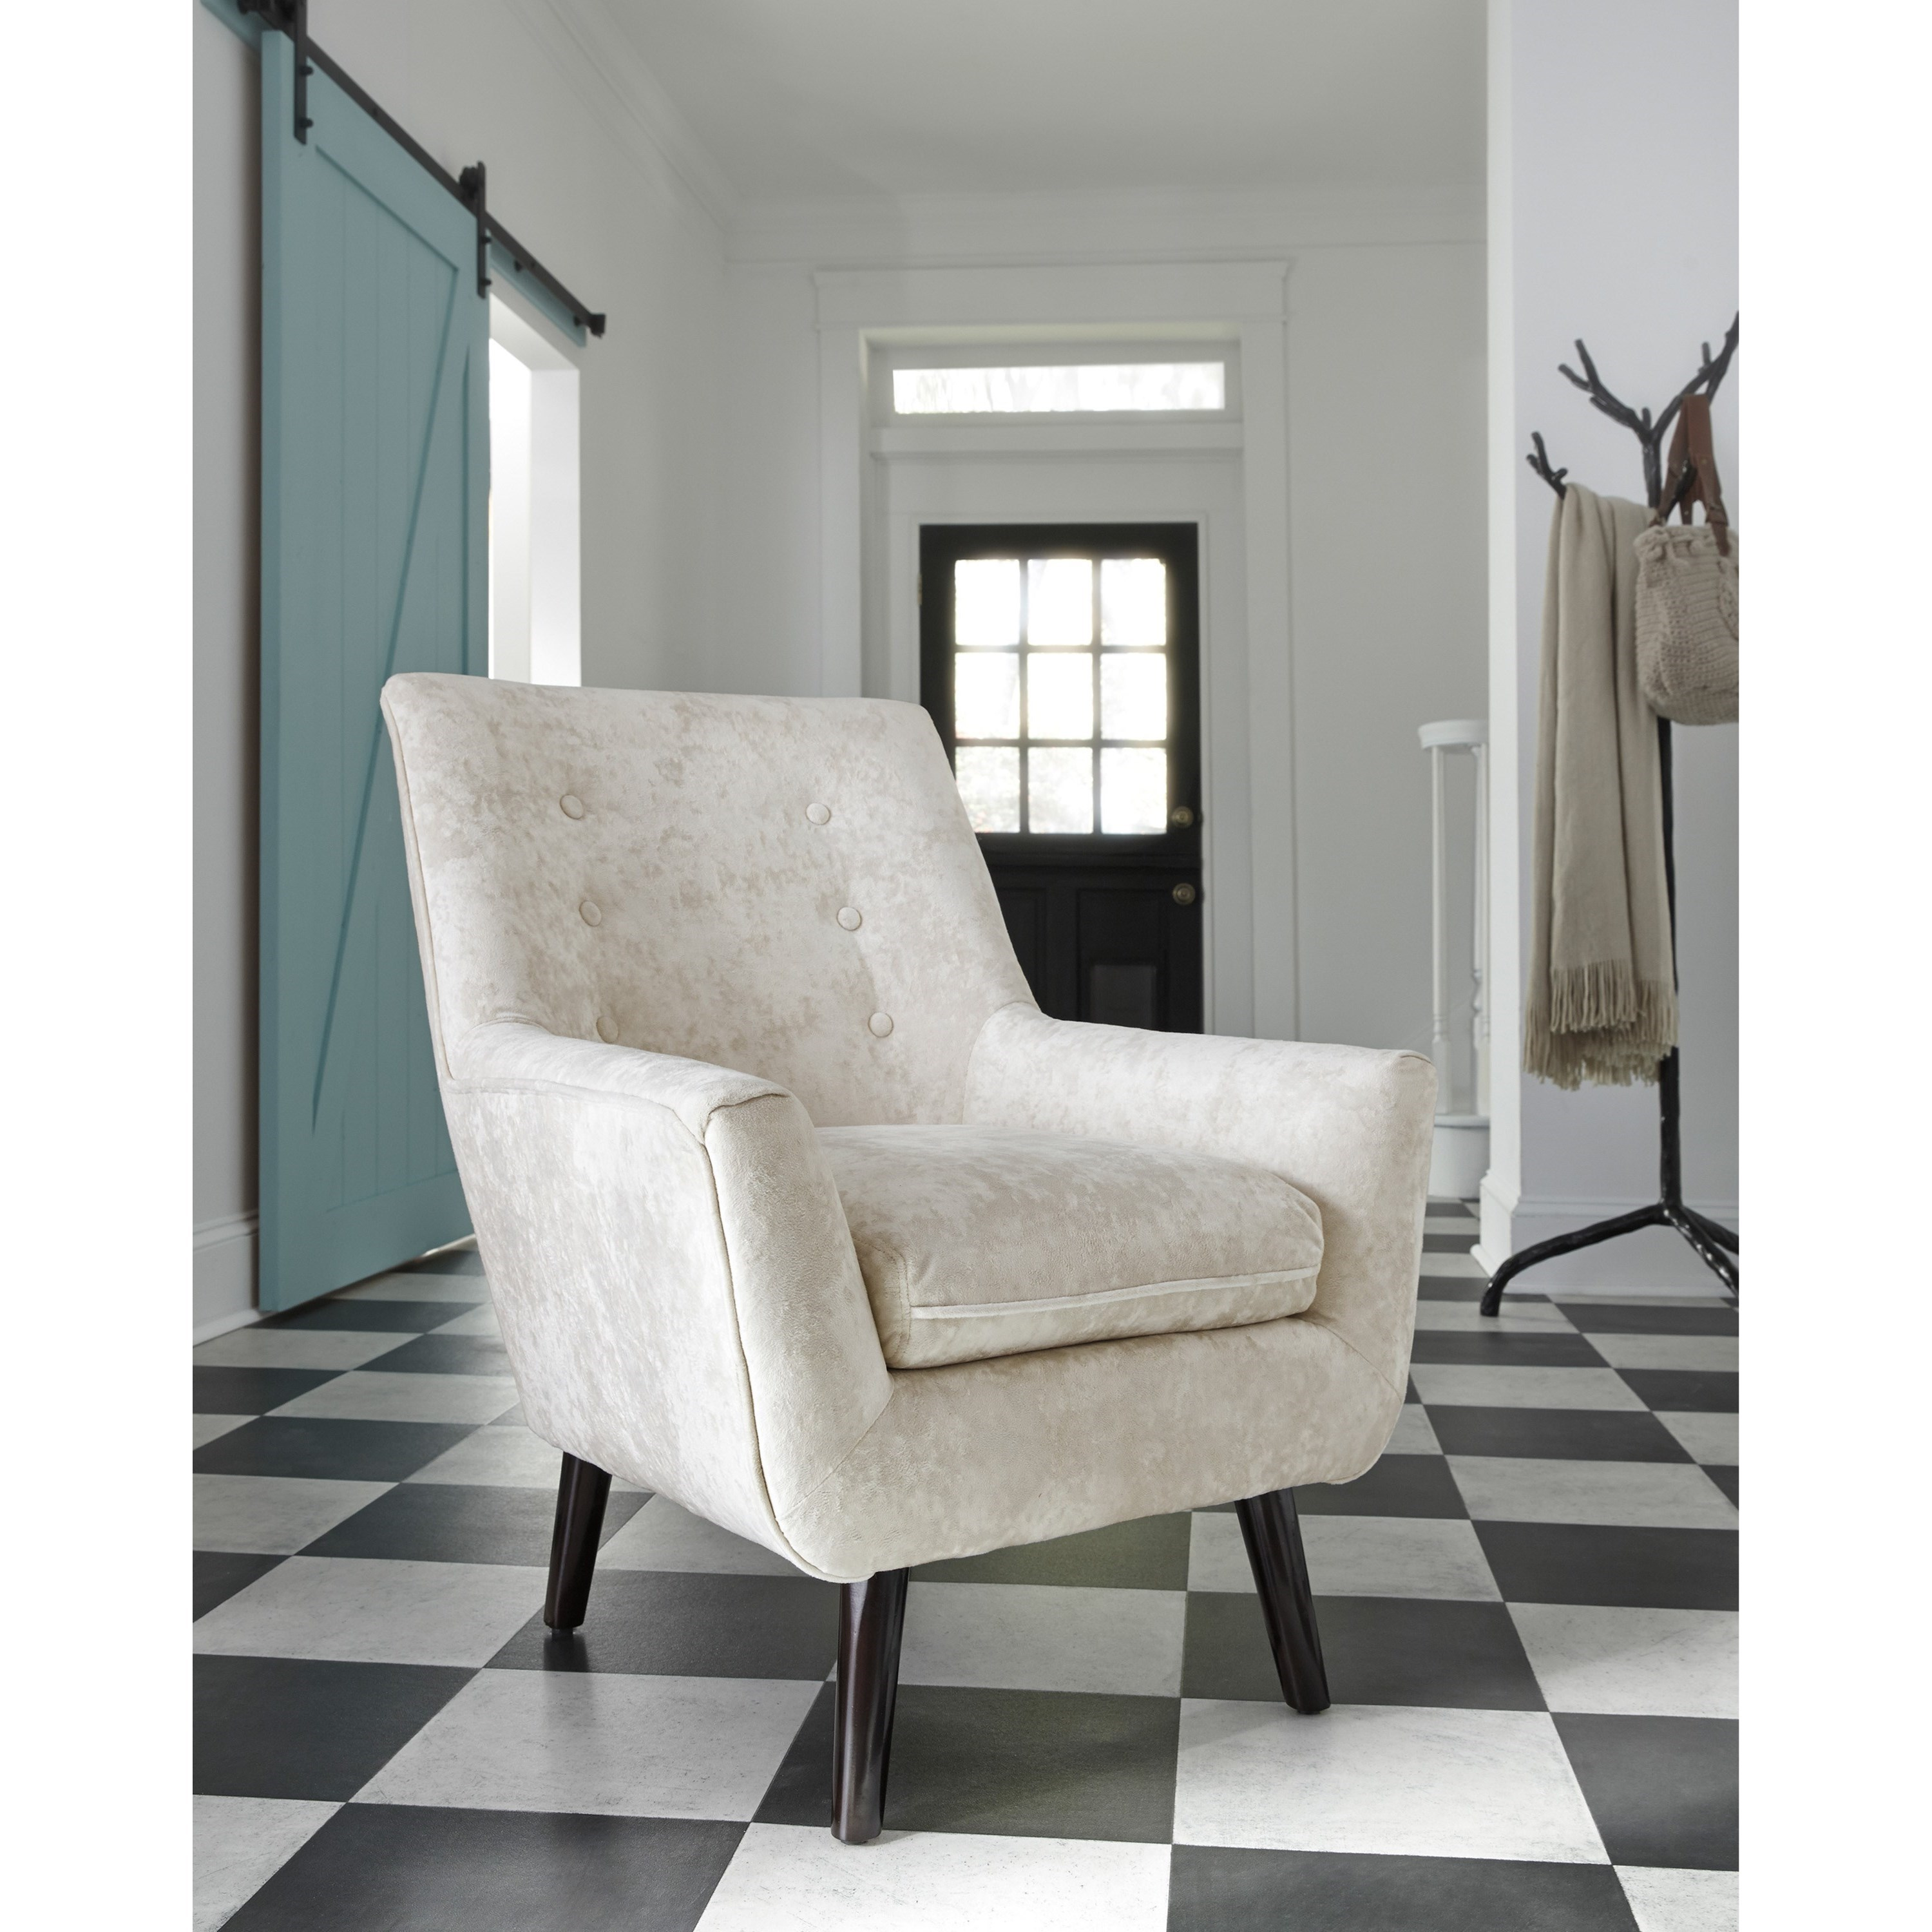 Zossen Mid Century Modern Accent Chair In Ivory Crushed